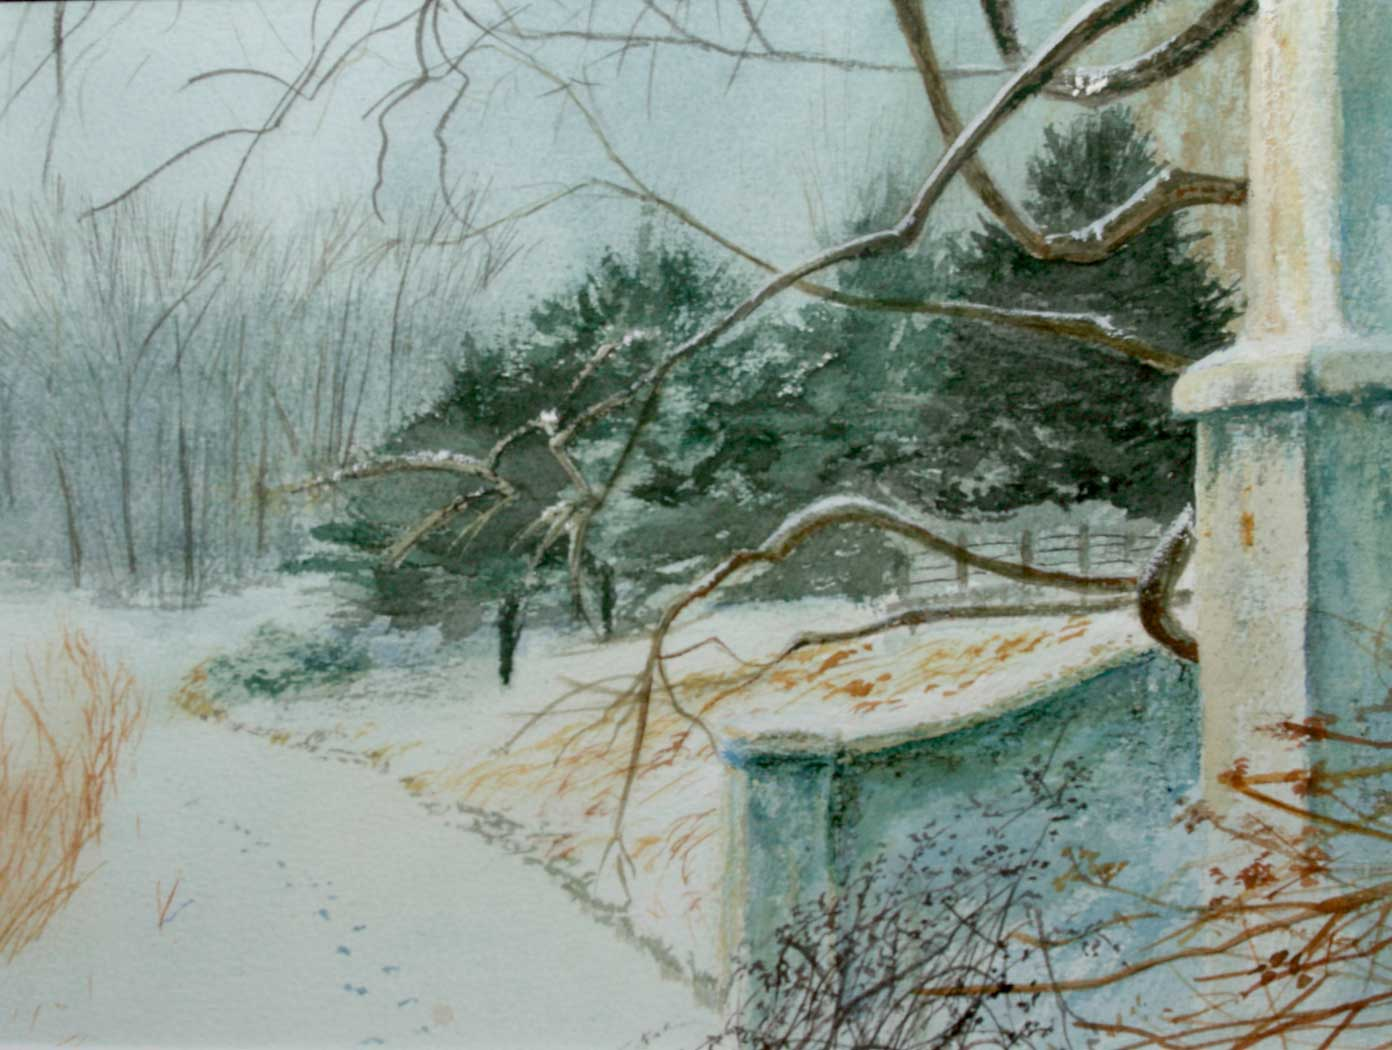 Botanic-Gardens---Winter-11-x14-inches